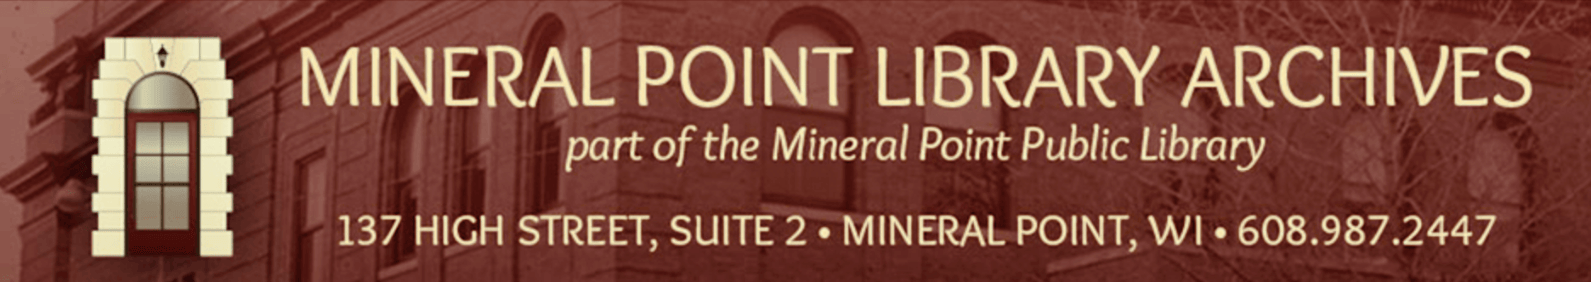 Mineral Point Library Archives